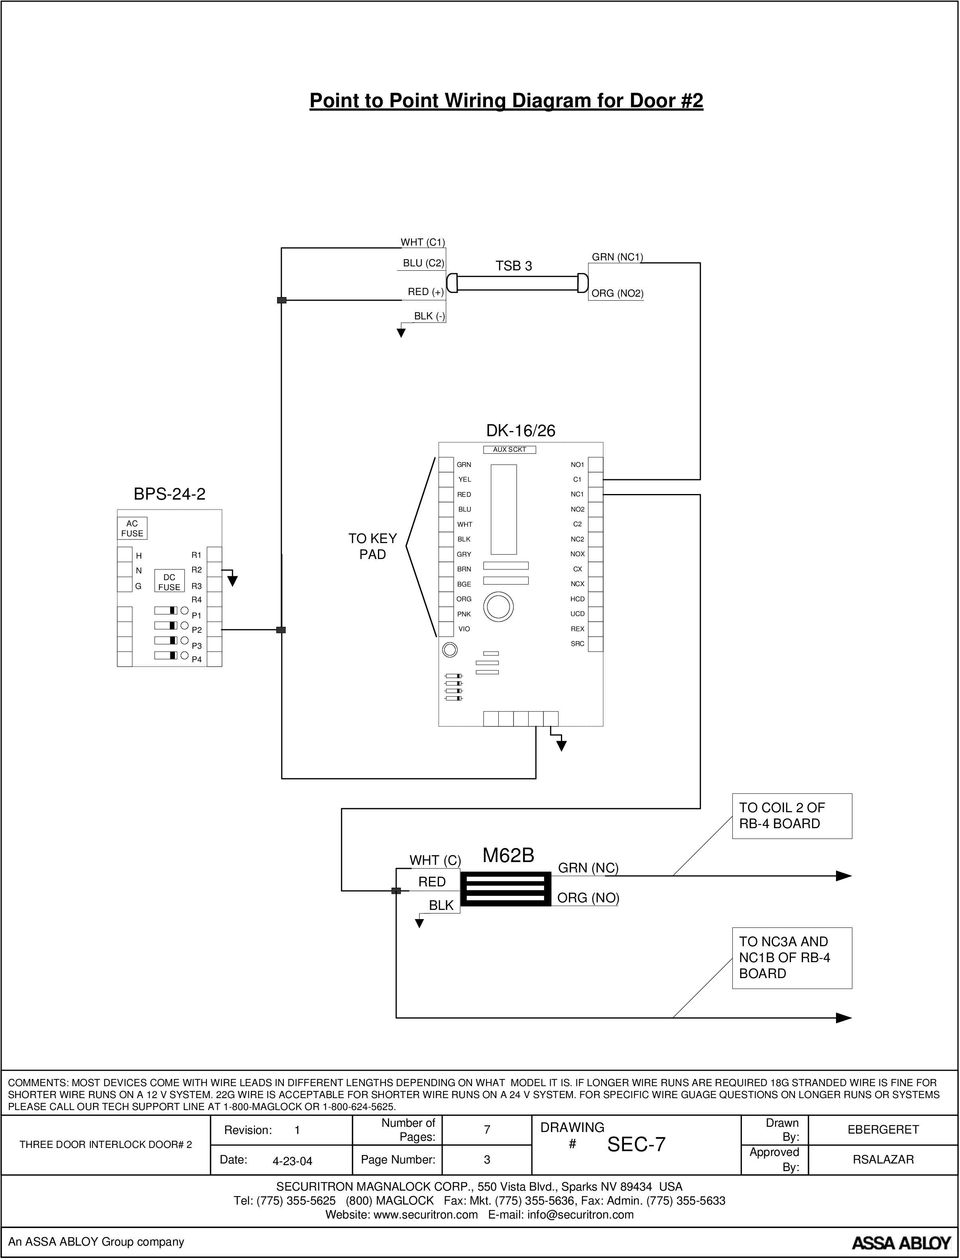 Securitron Wiring Diagrams - Wiring Diagram Home on thermostat schematic diagram, refrigerator schematic diagram, baseboard heat diagram, thermostat wire, thermostat housing, thermostat white-rodgers wiringheatpump, thermostat installation, air conditioning diagram, thermostat symbol, thermostat troubleshooting, honeywell thermostat diagram, thermostat cable, thermostat manual, thermostat switch, thermostat clip art, controls for gas valve diagram, wall heater thermostat diagram, thermostat cover, circuit diagram,